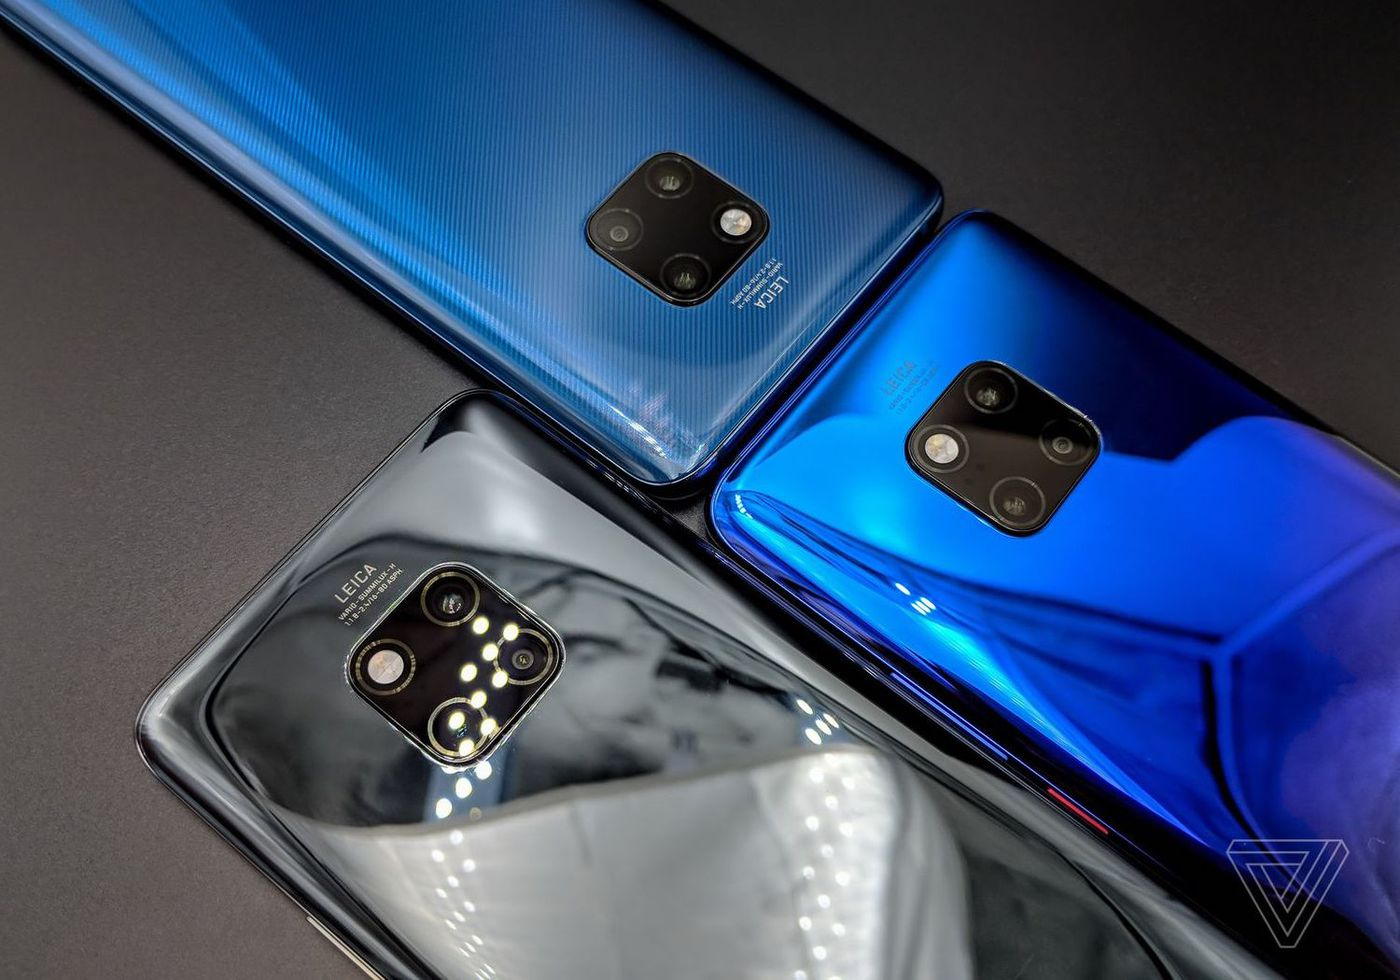 The best Chinese phones you can't buy in the US - The Verge